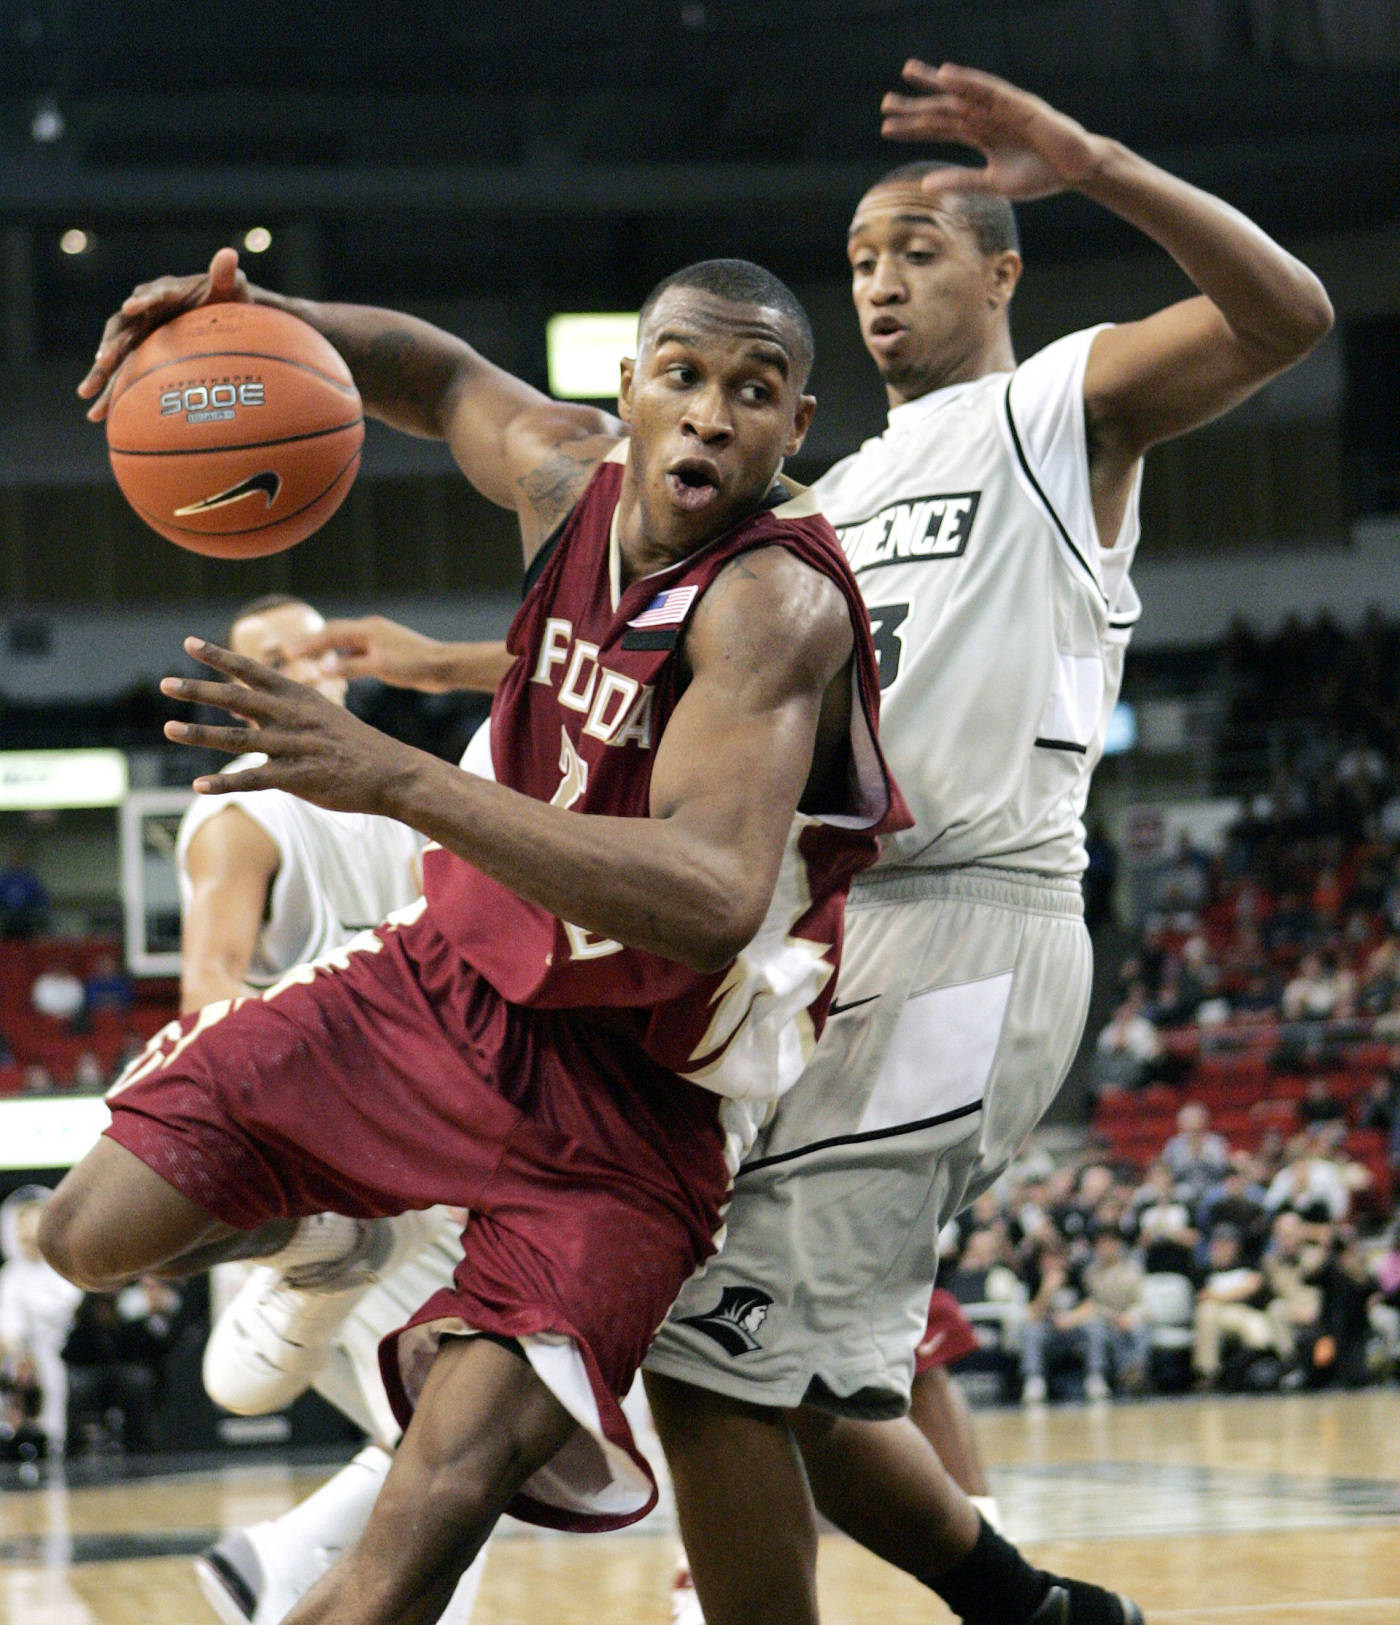 Florida State's Jason Rich drives past Providence's Charles Burch in the second half.